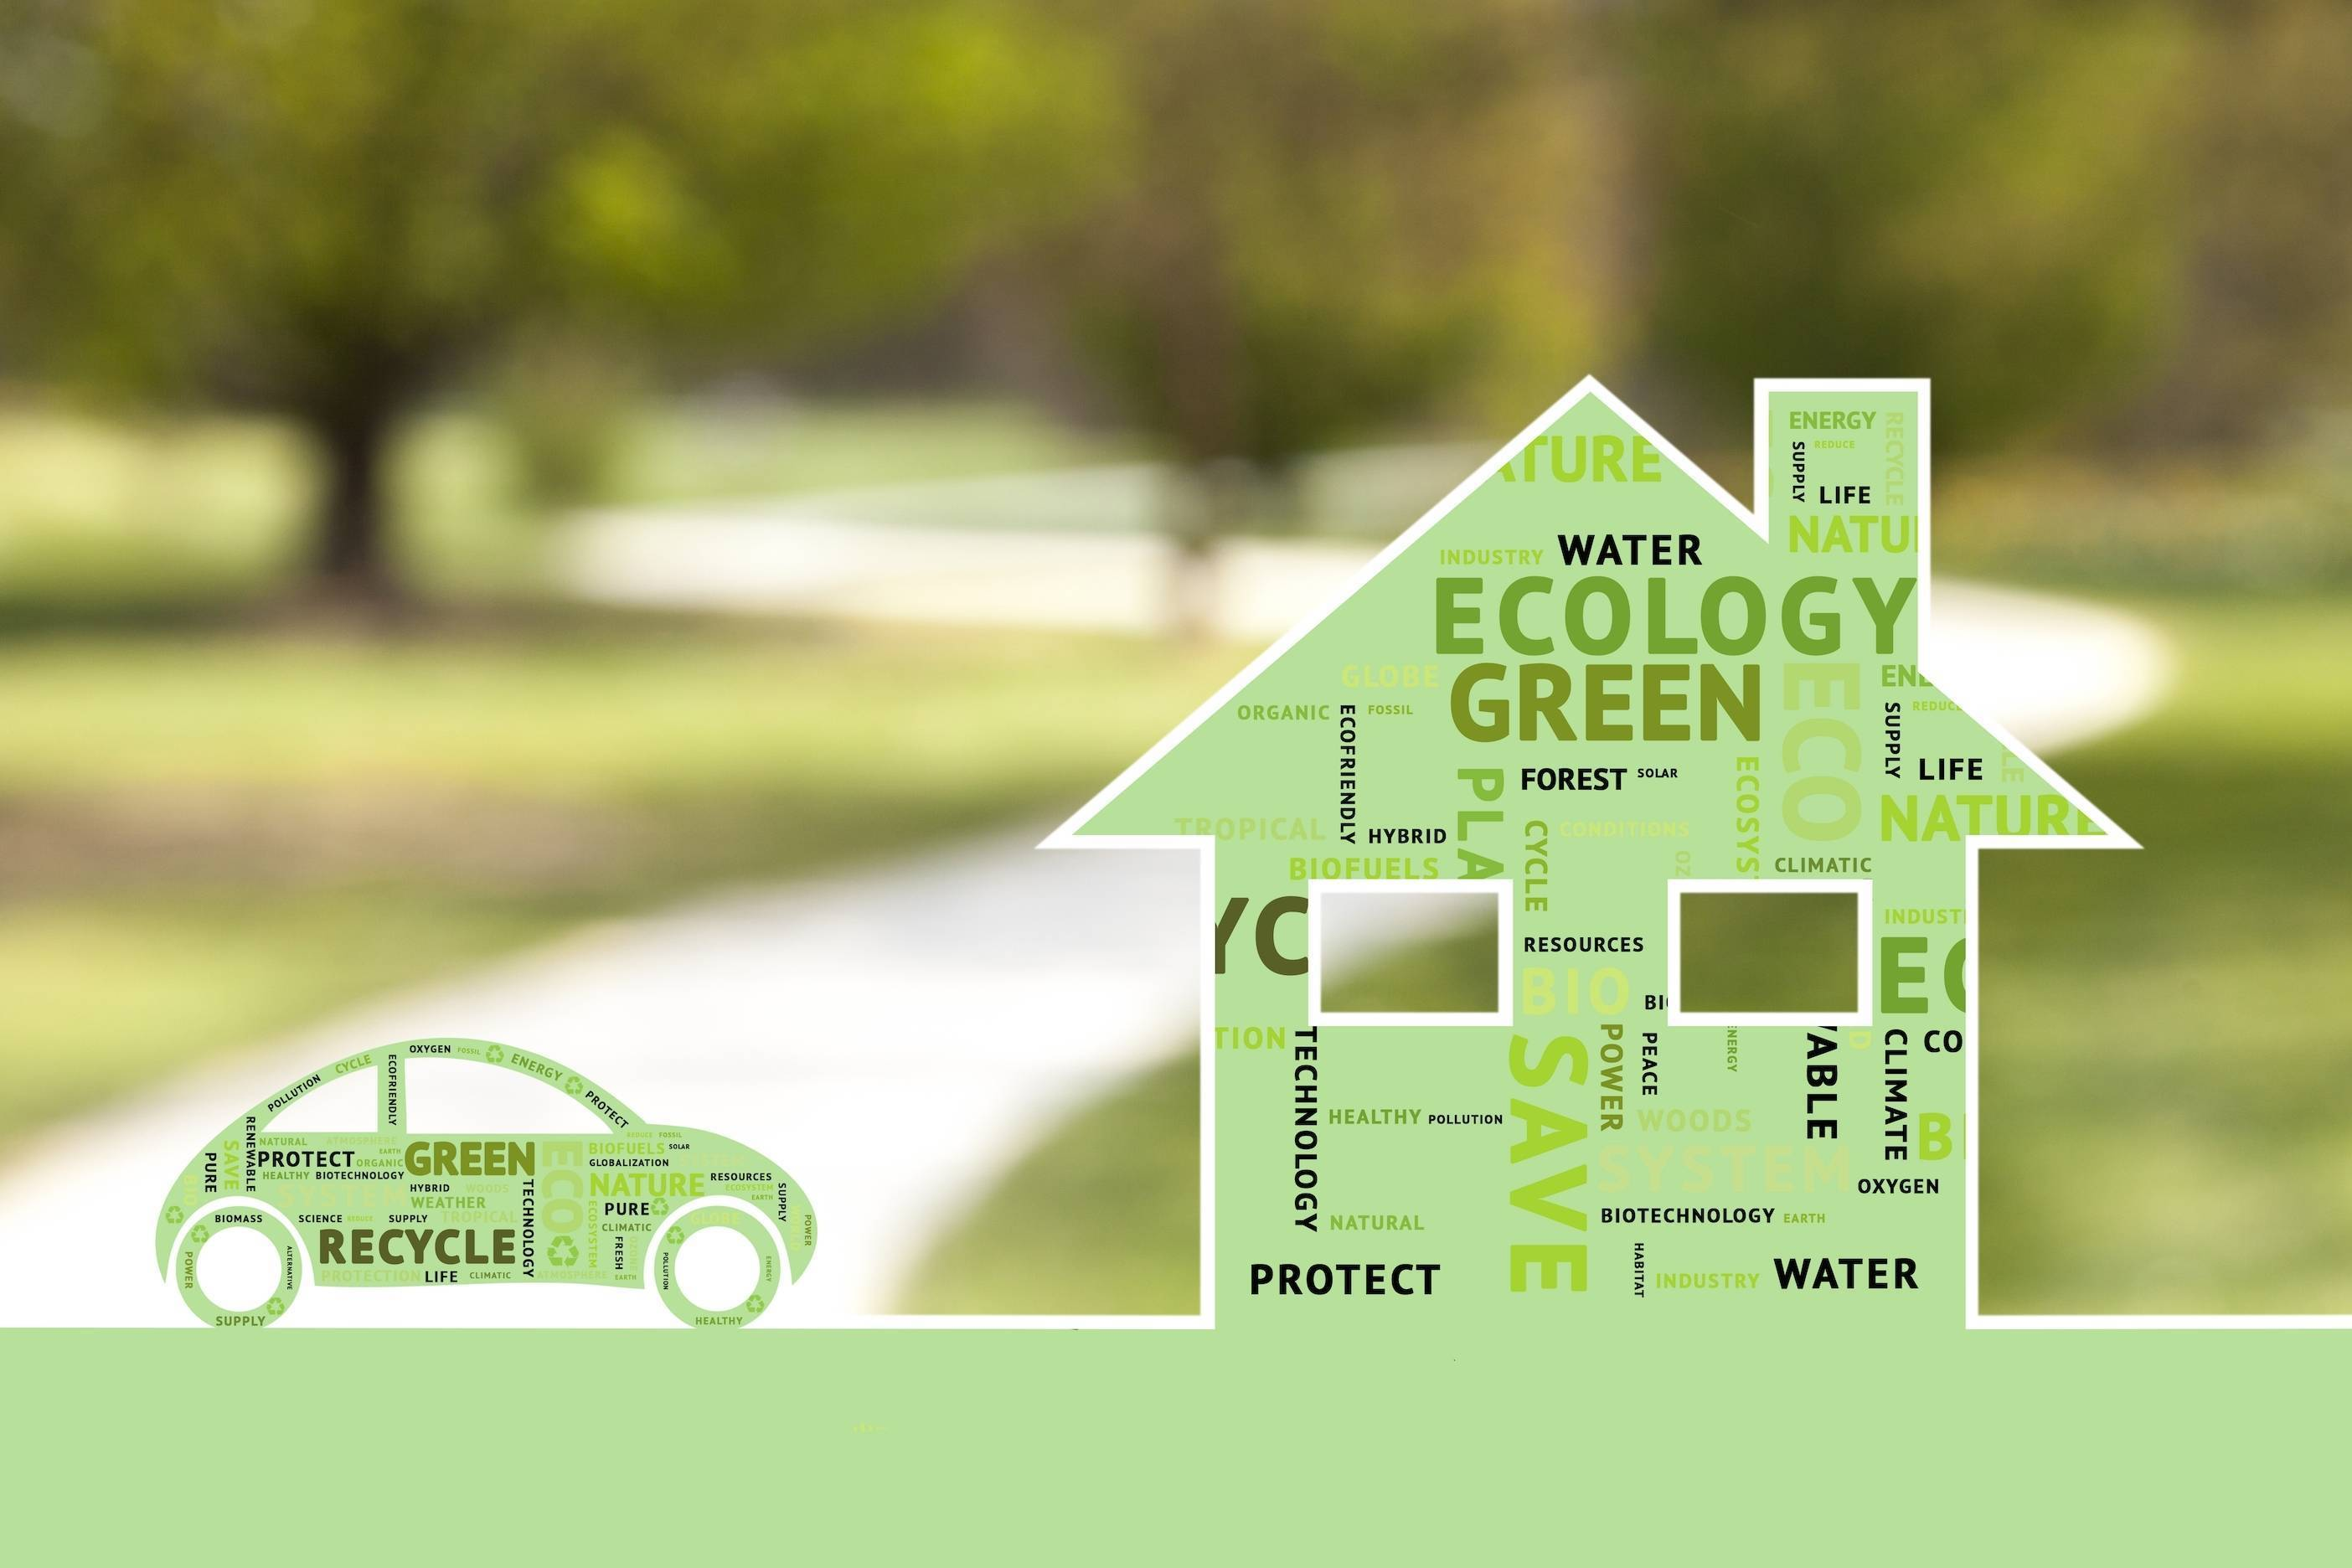 Somerset: Come Out to Celebrate Drive Electric Earth Day